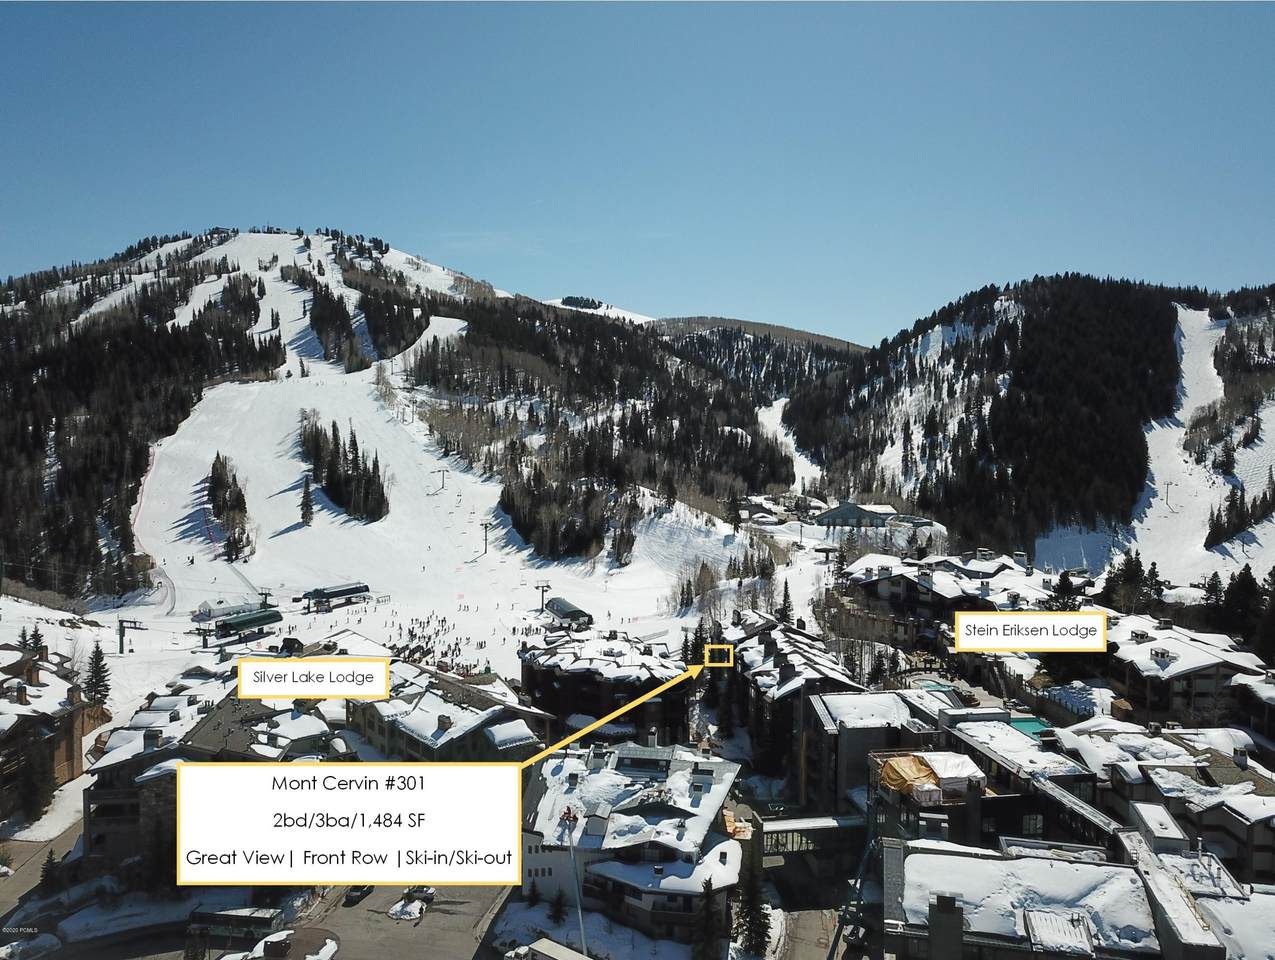 https://bt-photos.global.ssl.fastly.net/parkcity/1280_boomver_6_12000034-2.jpg